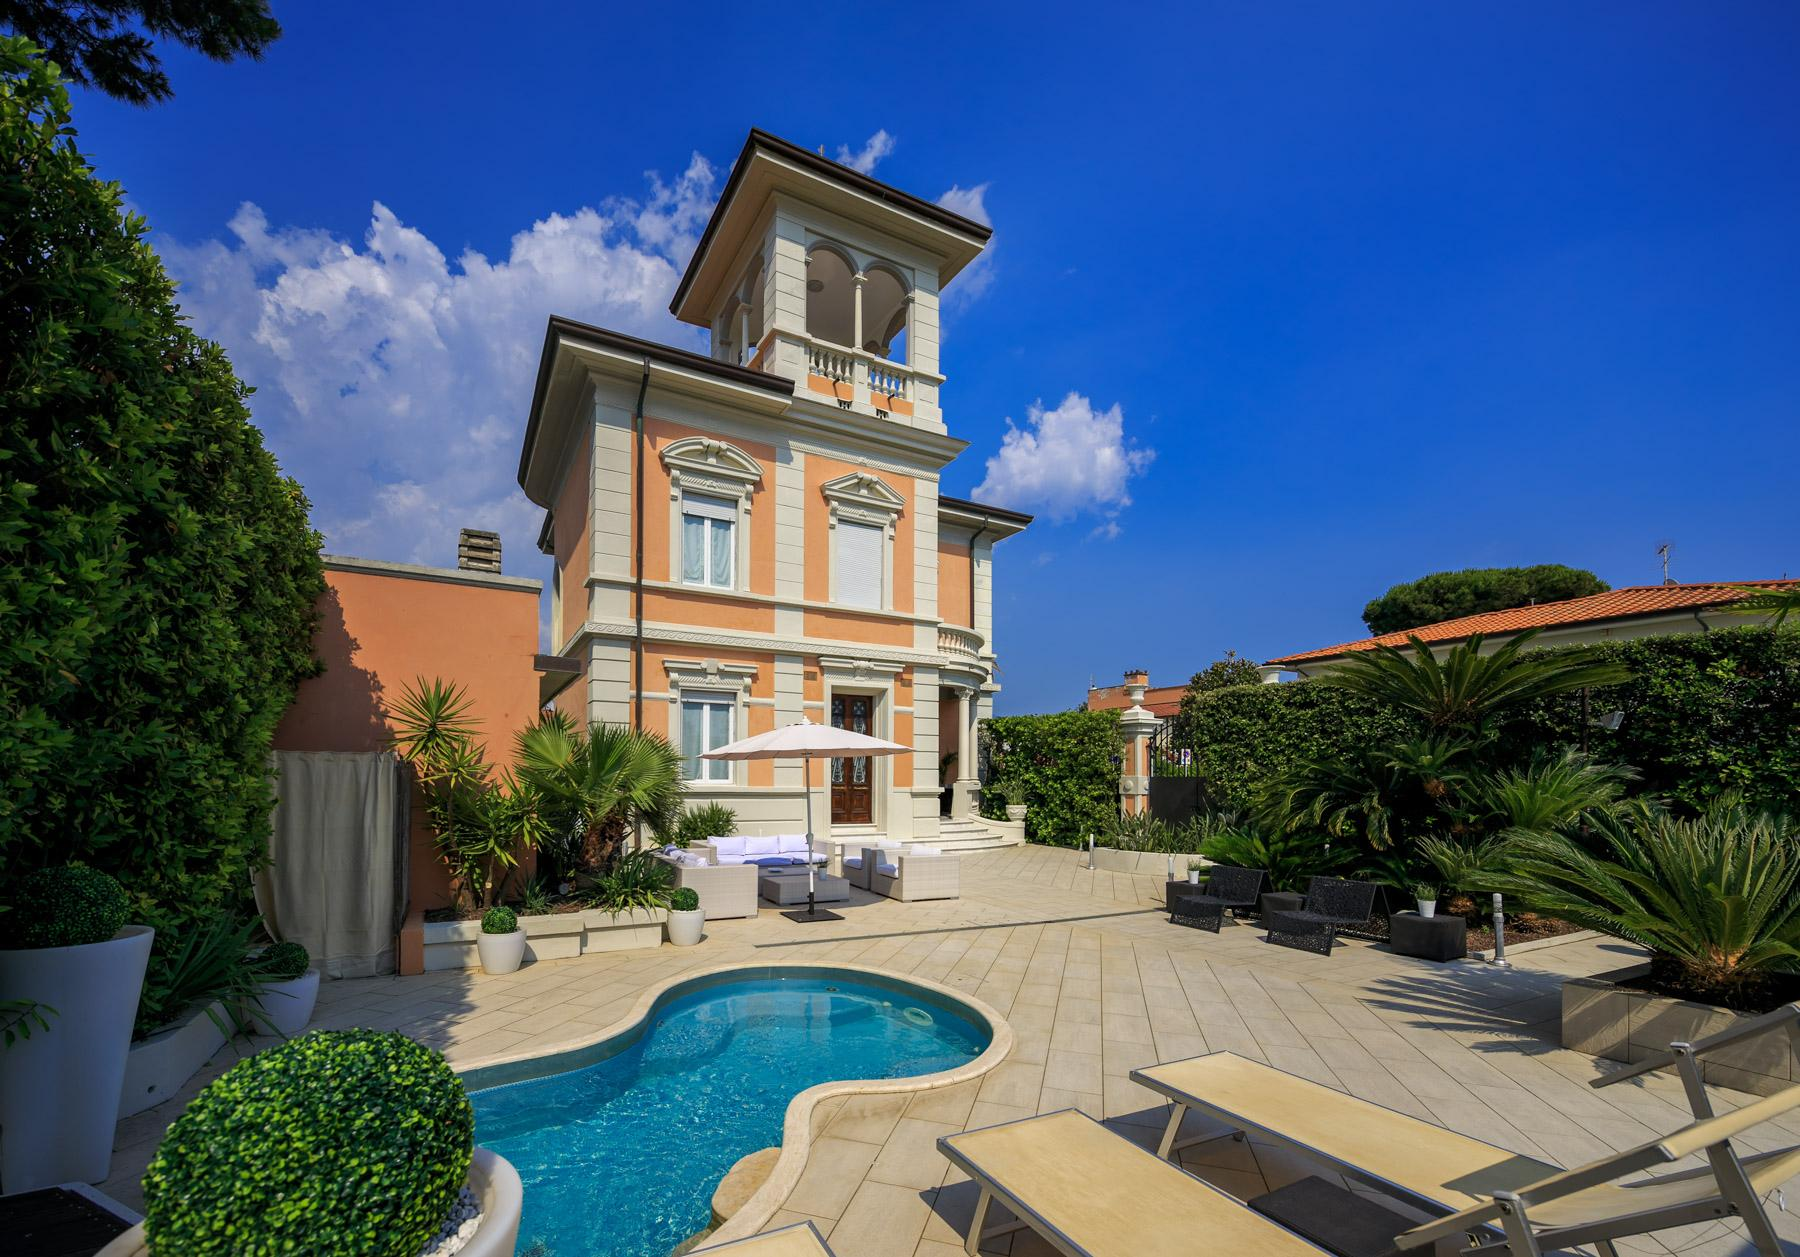 Seafront Villa with tower in Forte dei Marmi - 1